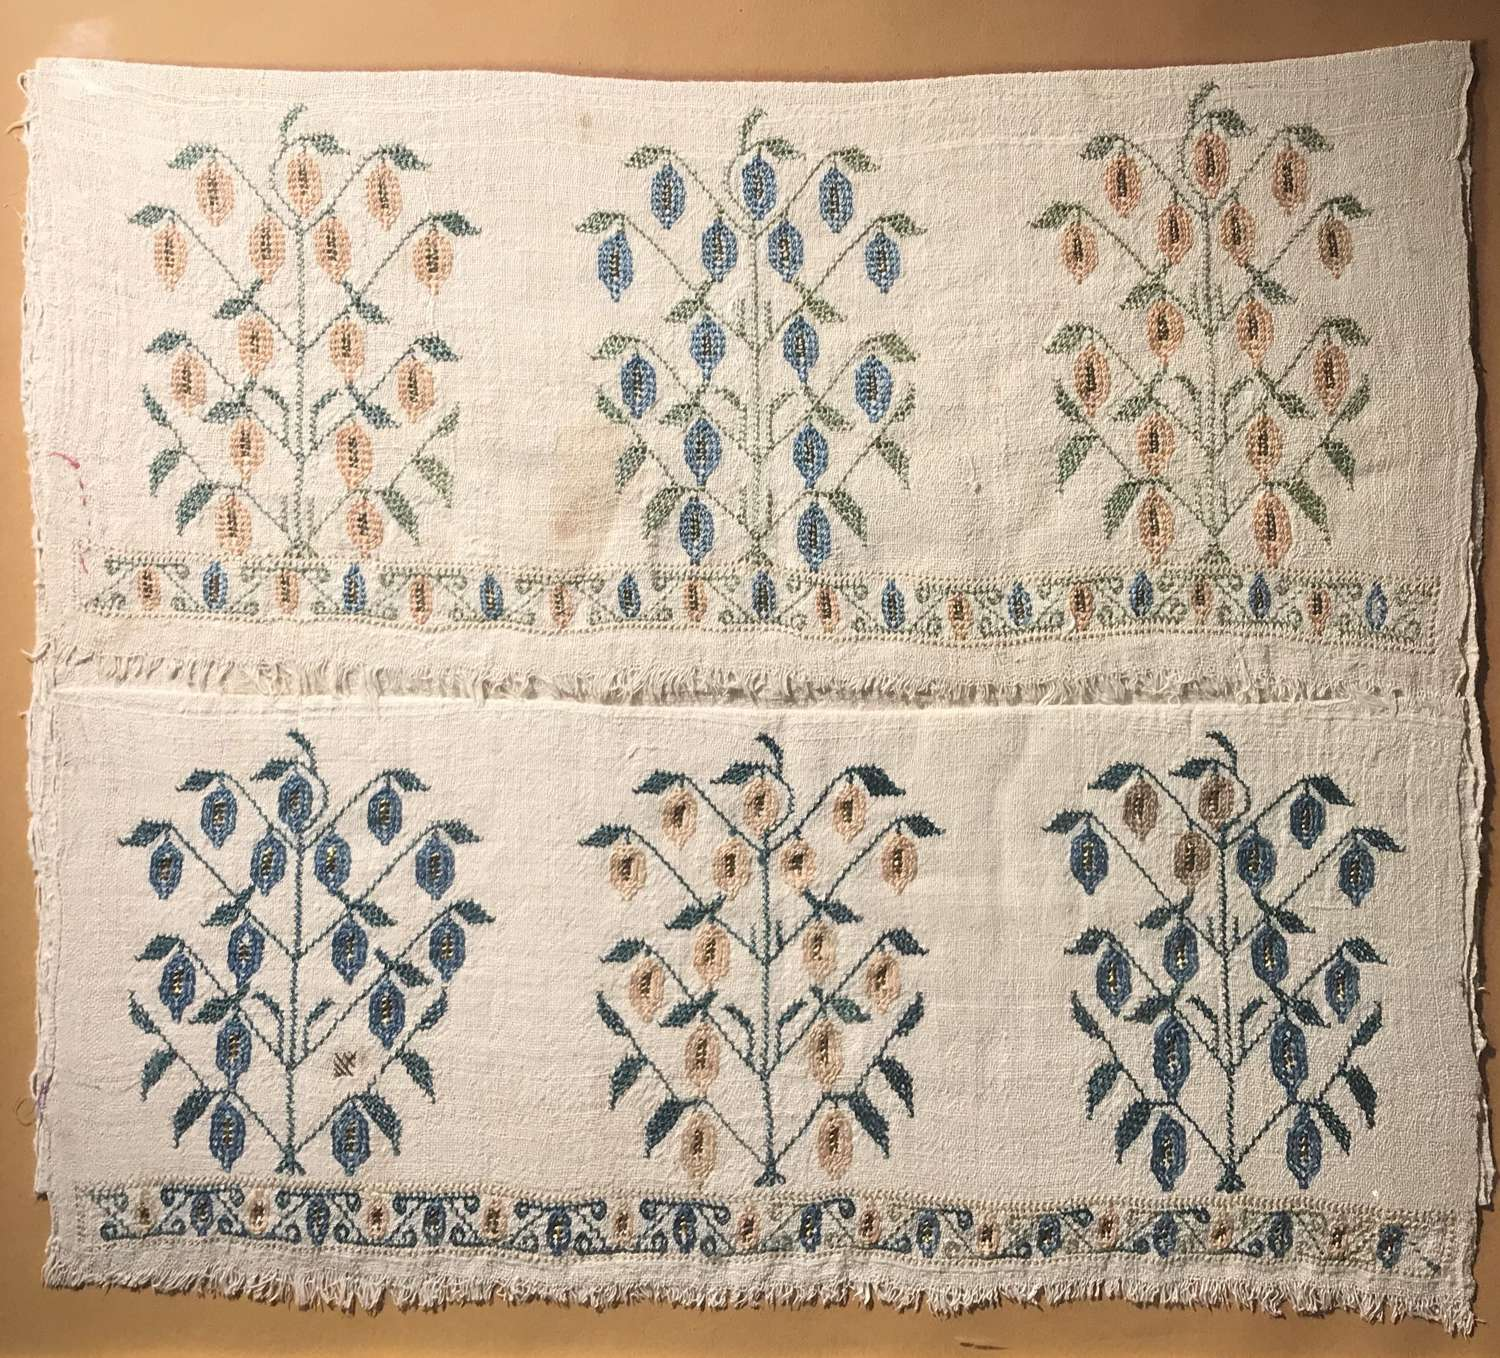 19th c. Ottoman embroidered linen towel